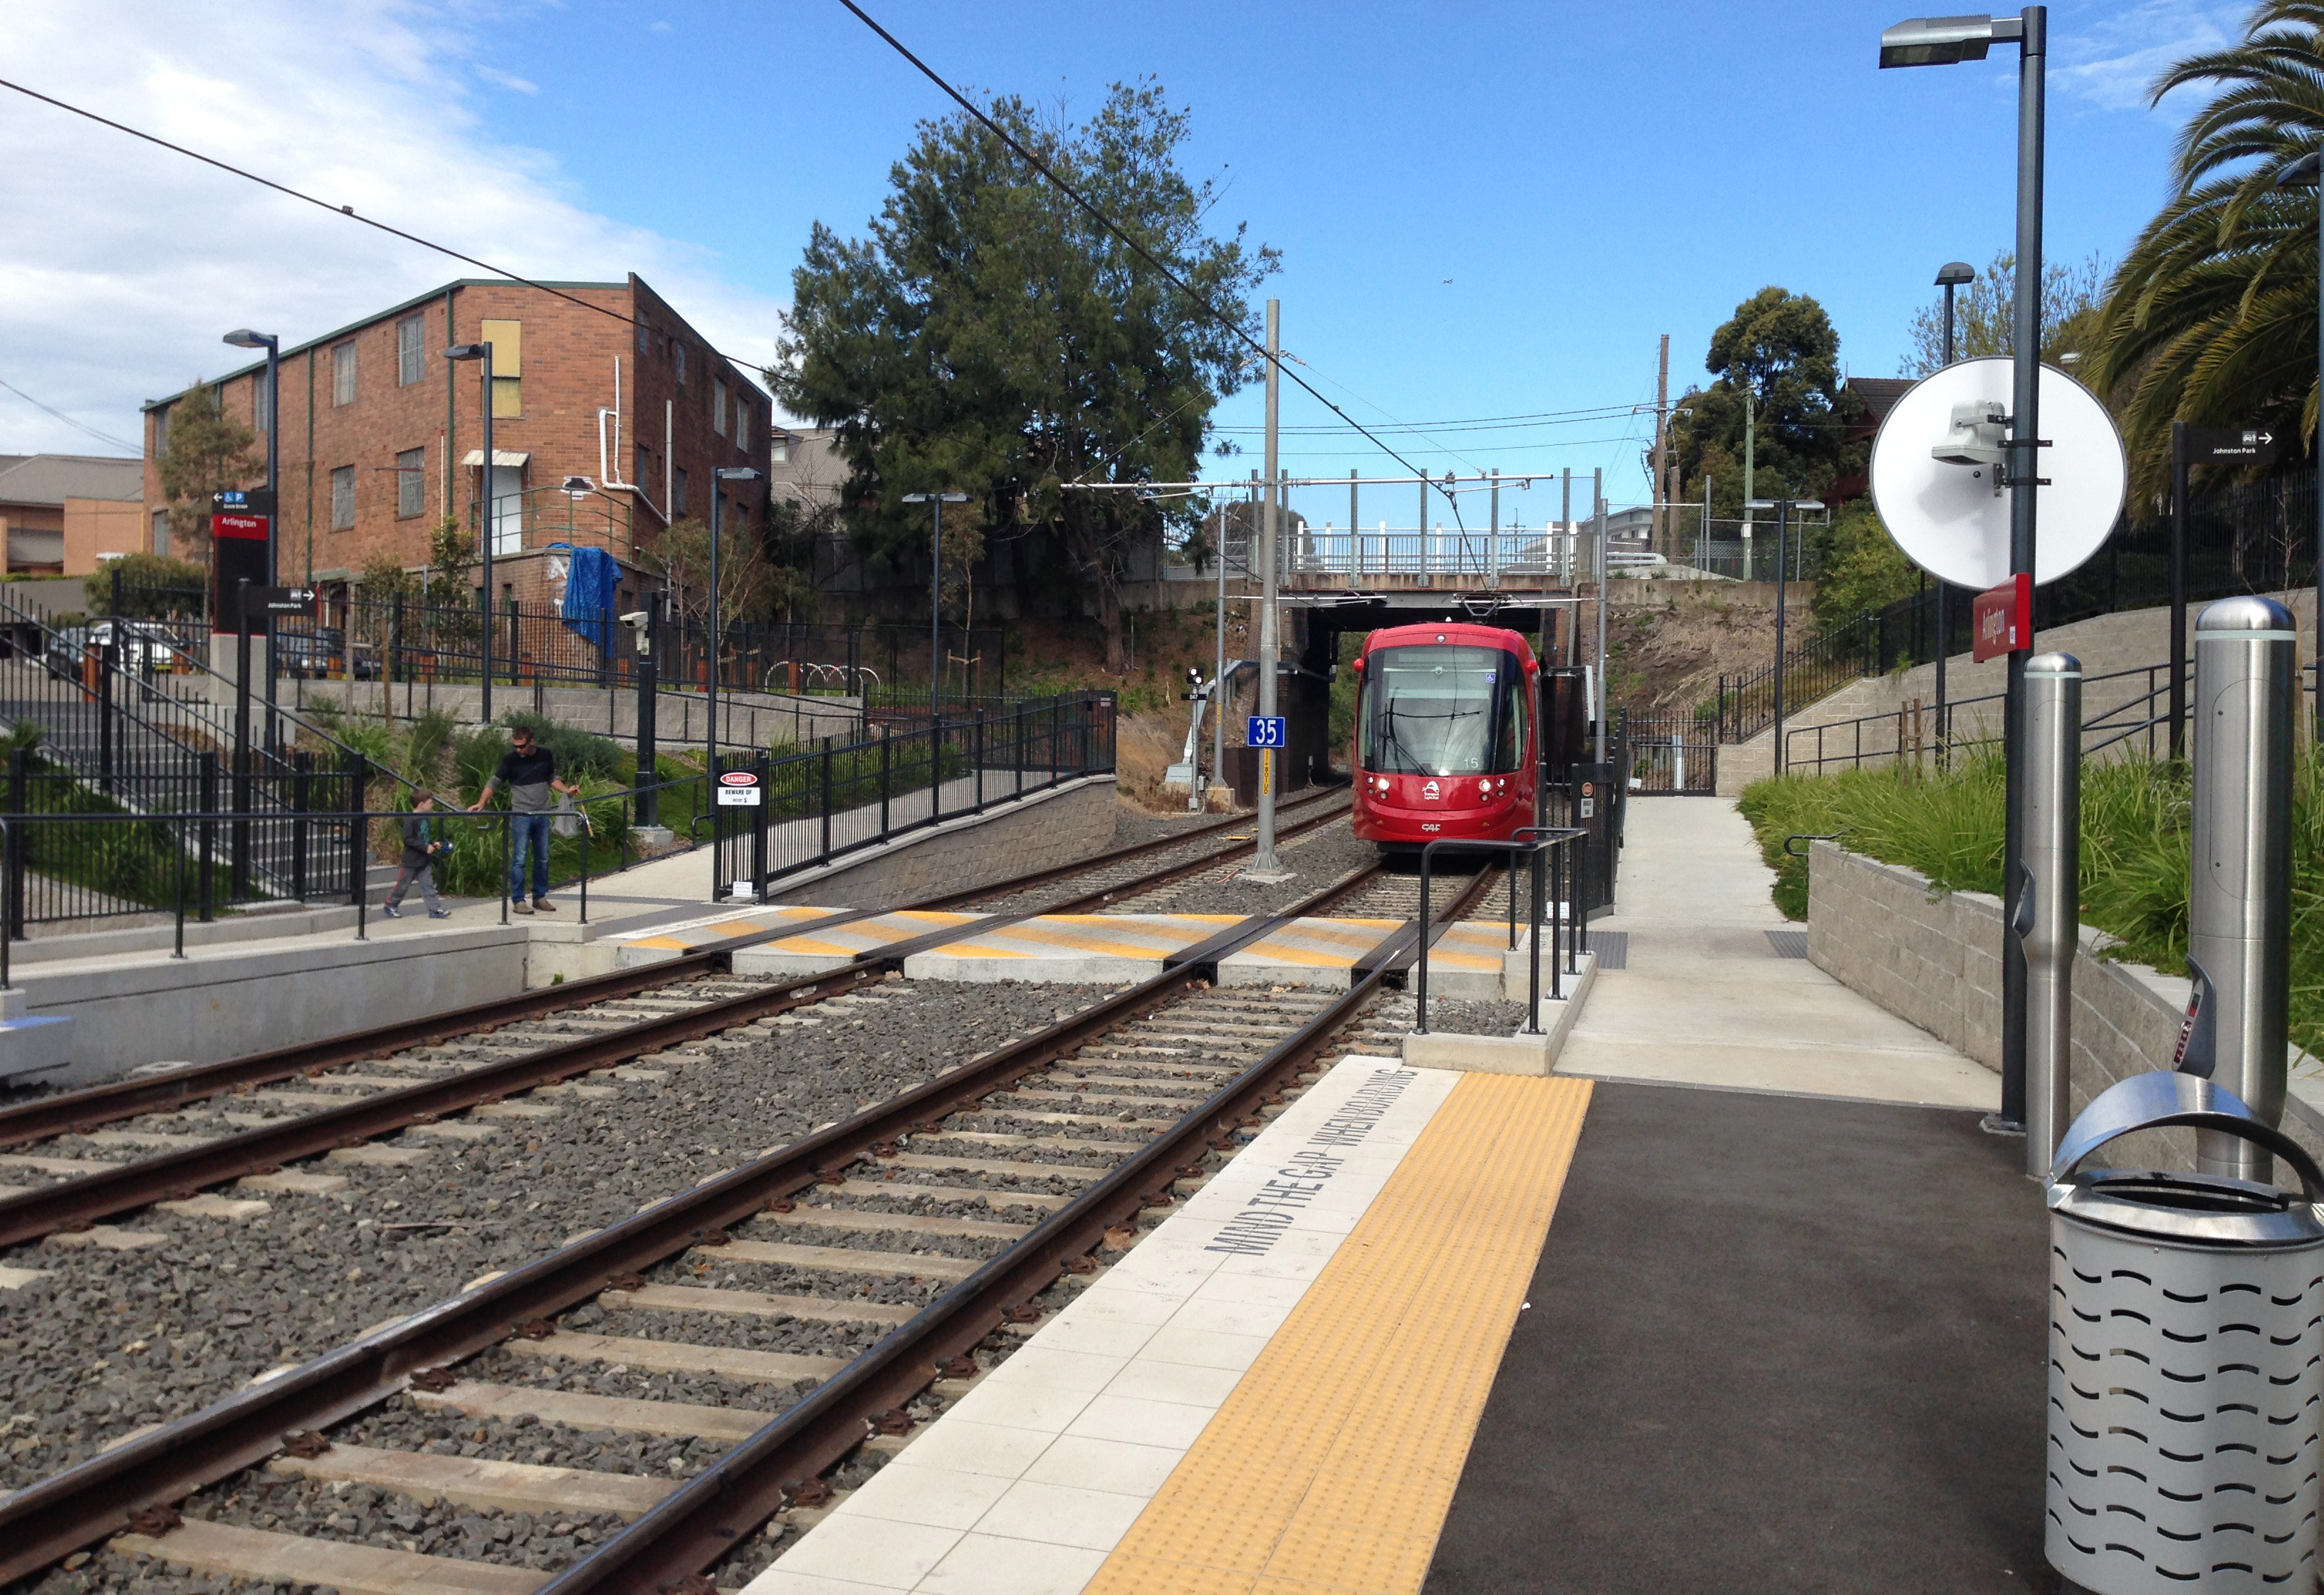 Railways in sydney wikipedia arlington station on the l1 dulwich hill line the only operational line of the sydney light rail network aloadofball Images